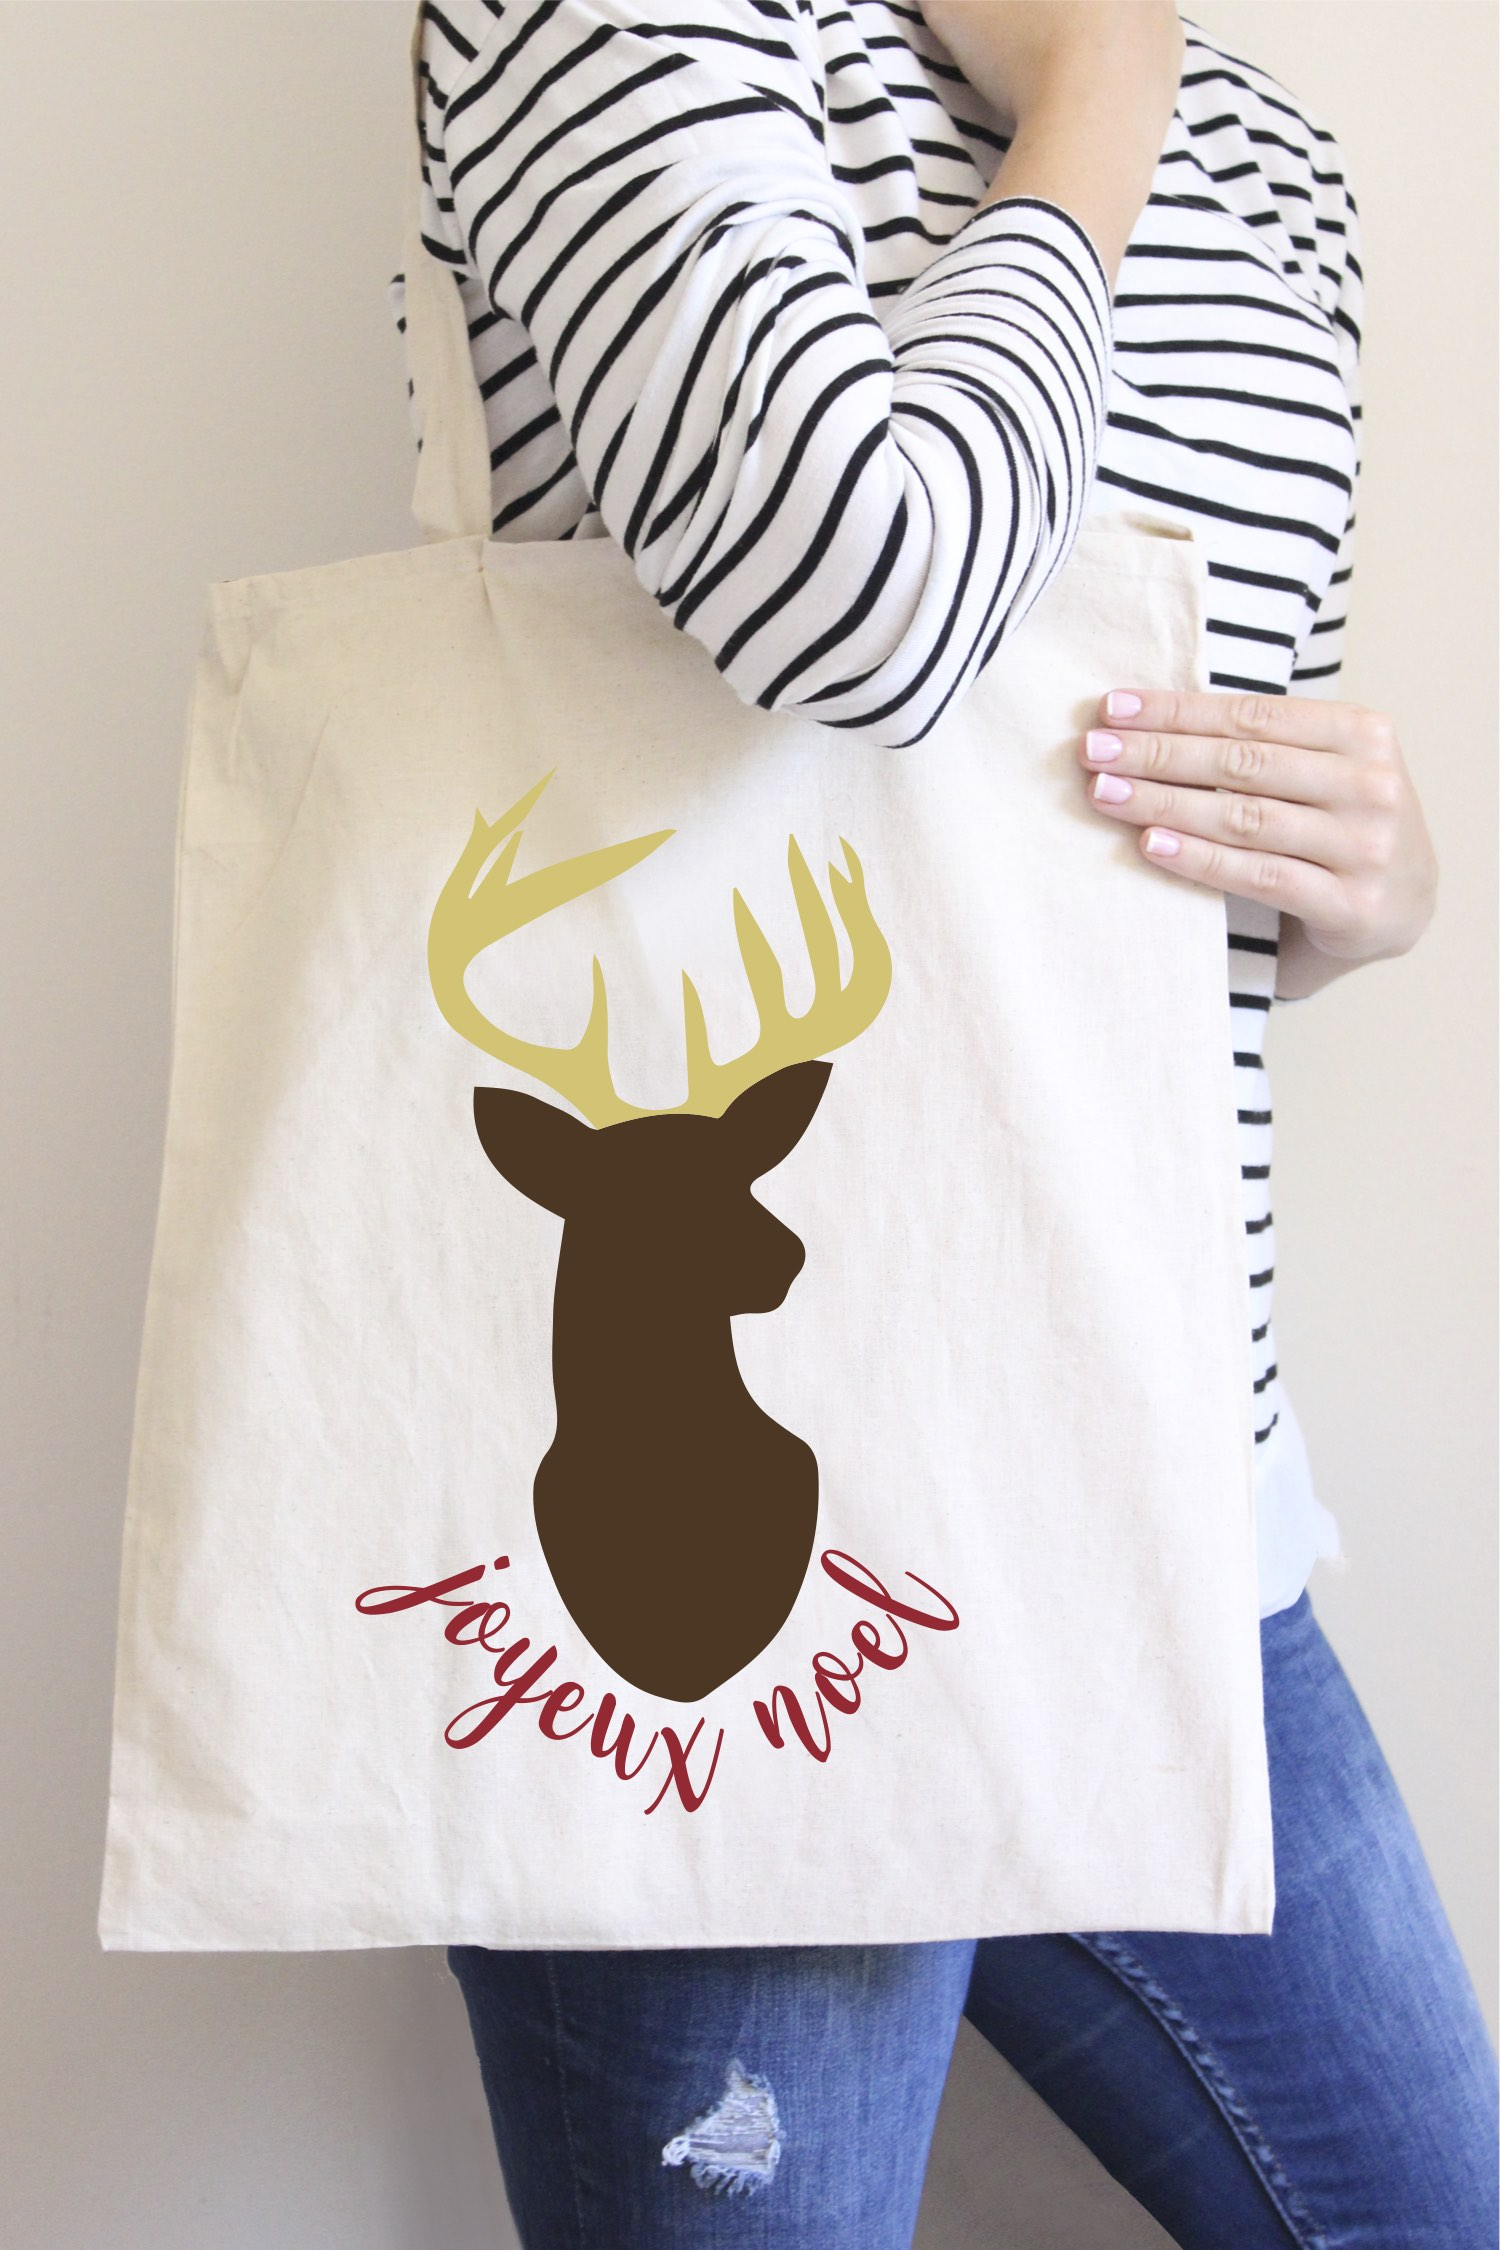 Joyeux Noel Holiday Tote Bag